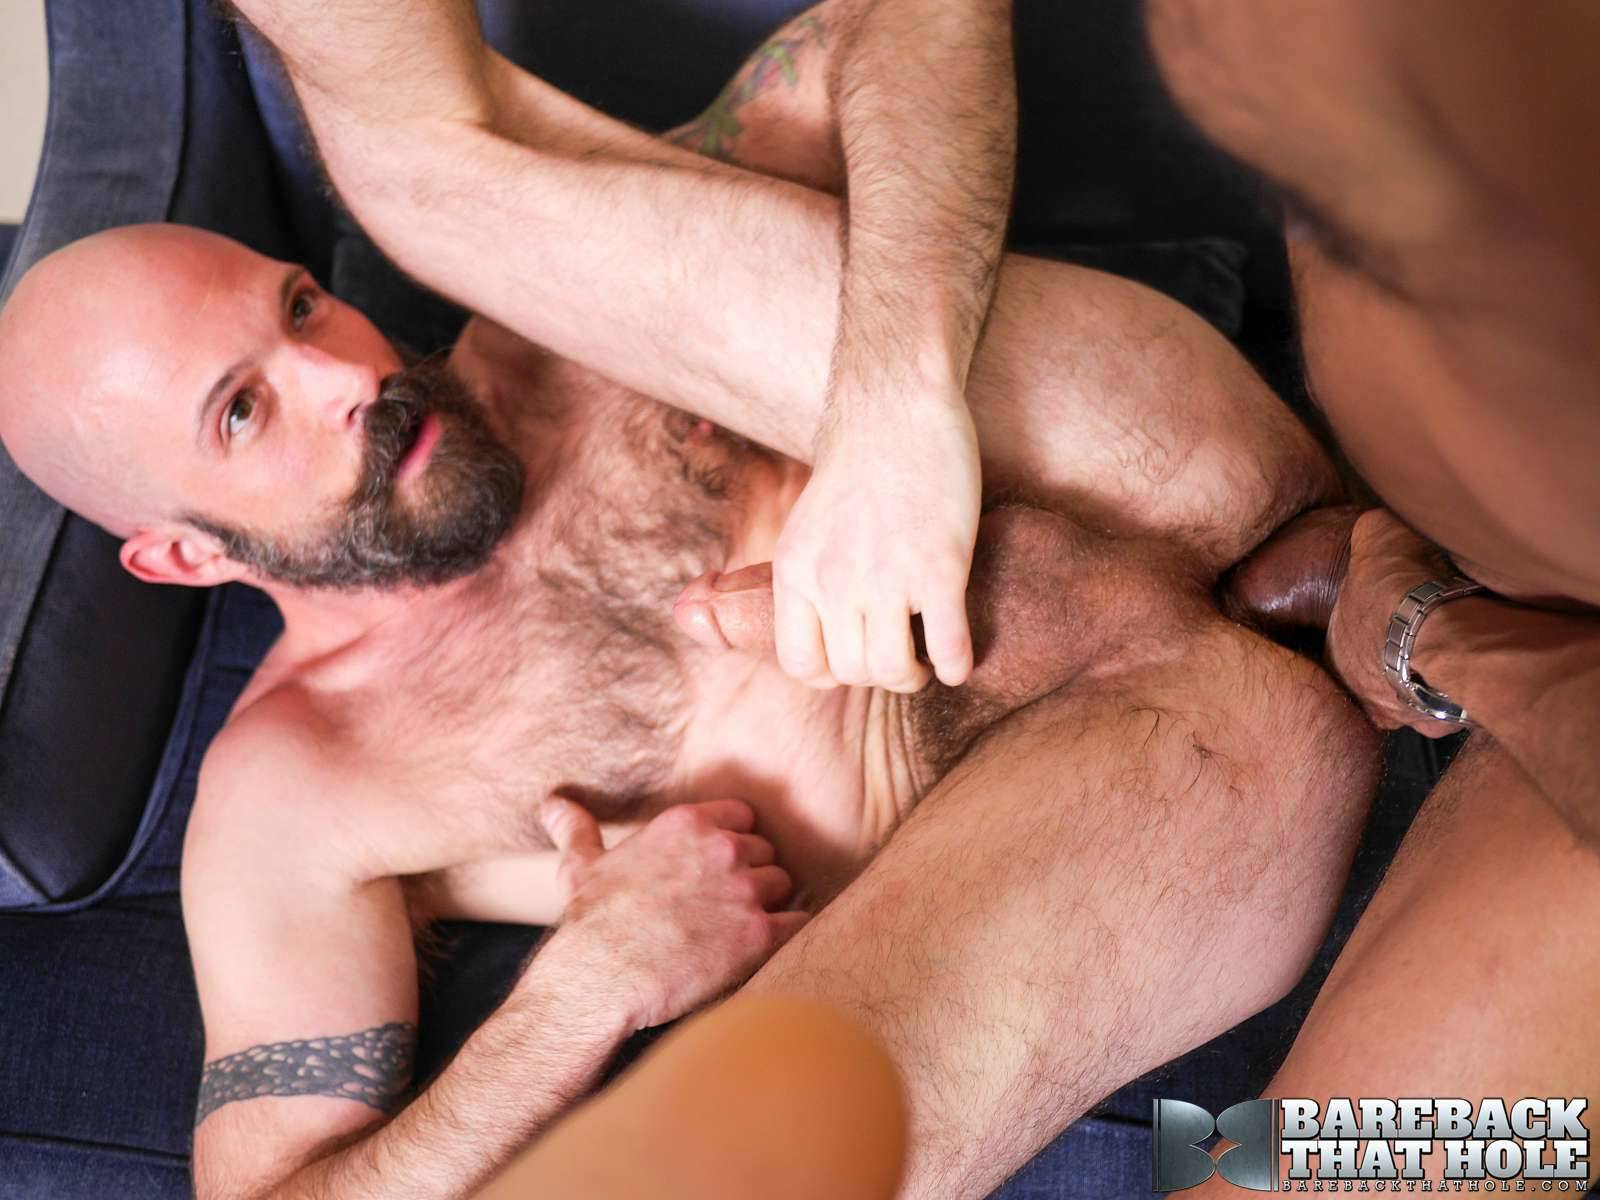 Mickey Carpathio and Saul Leinad Gay Bareback